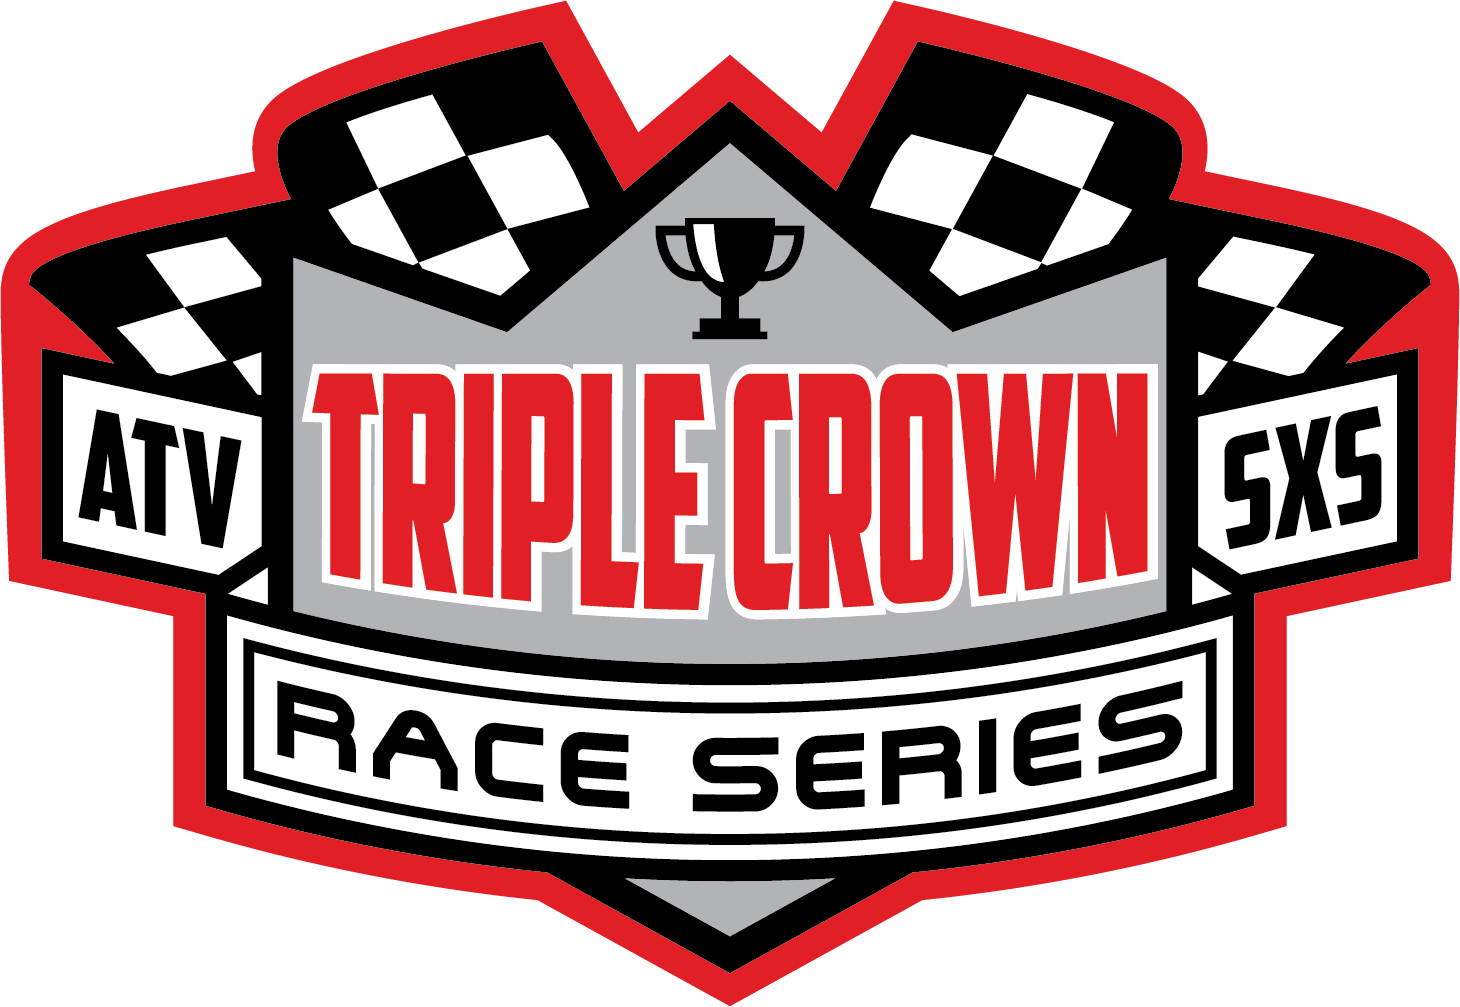 ATV Triple Crown